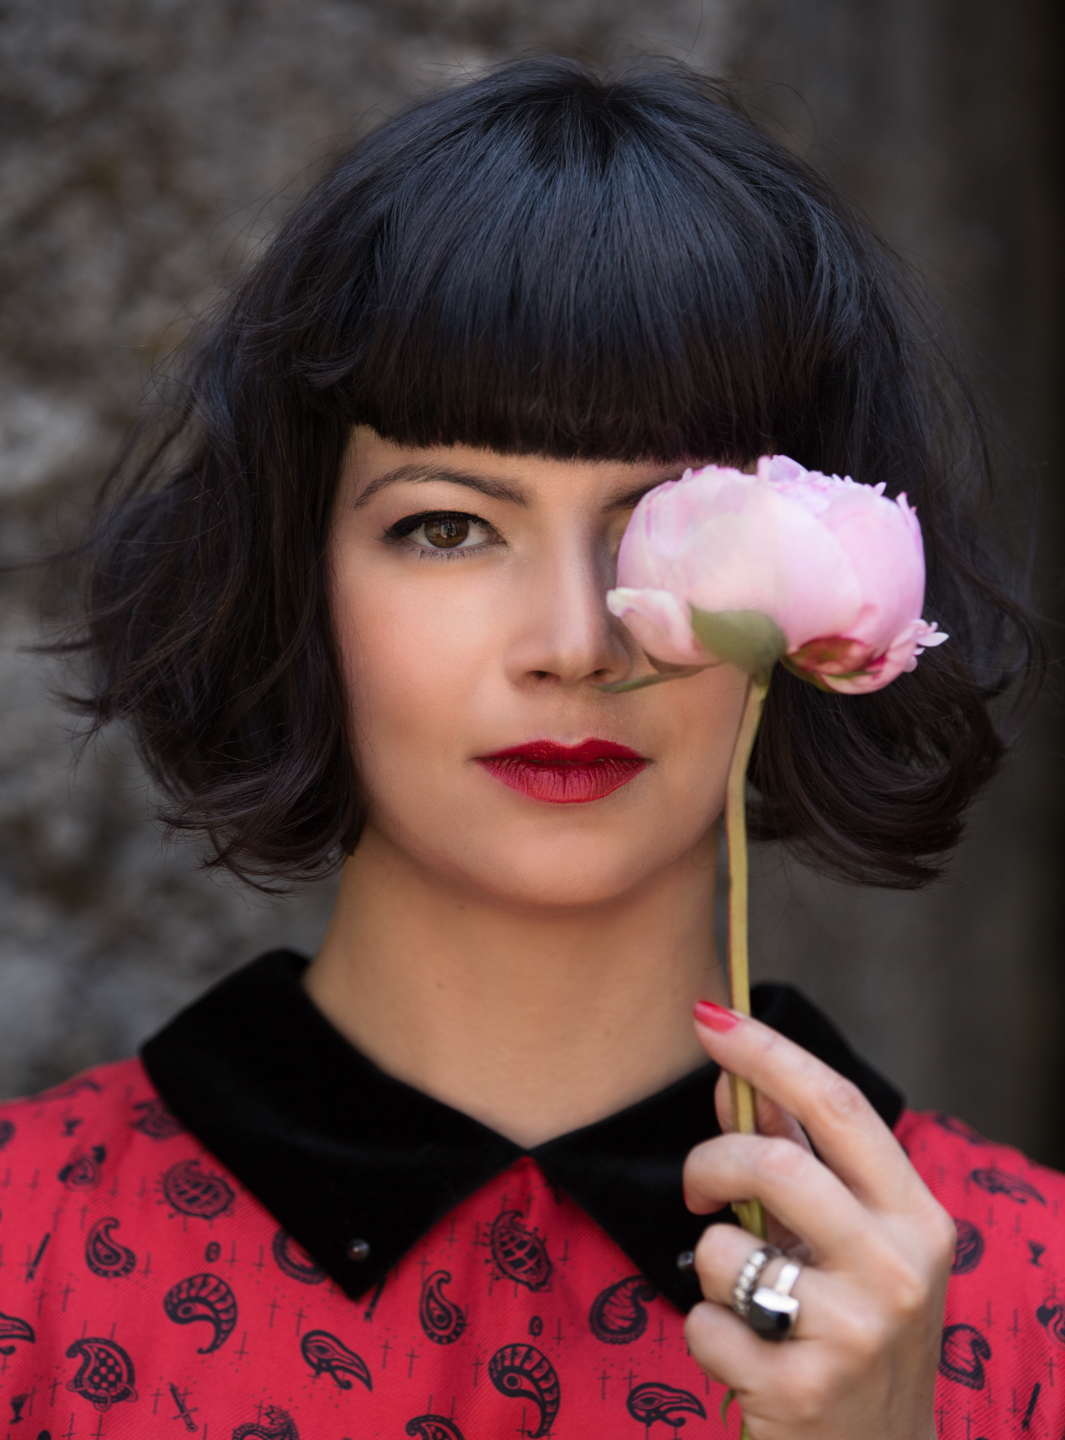 women with a flower covering her left eye